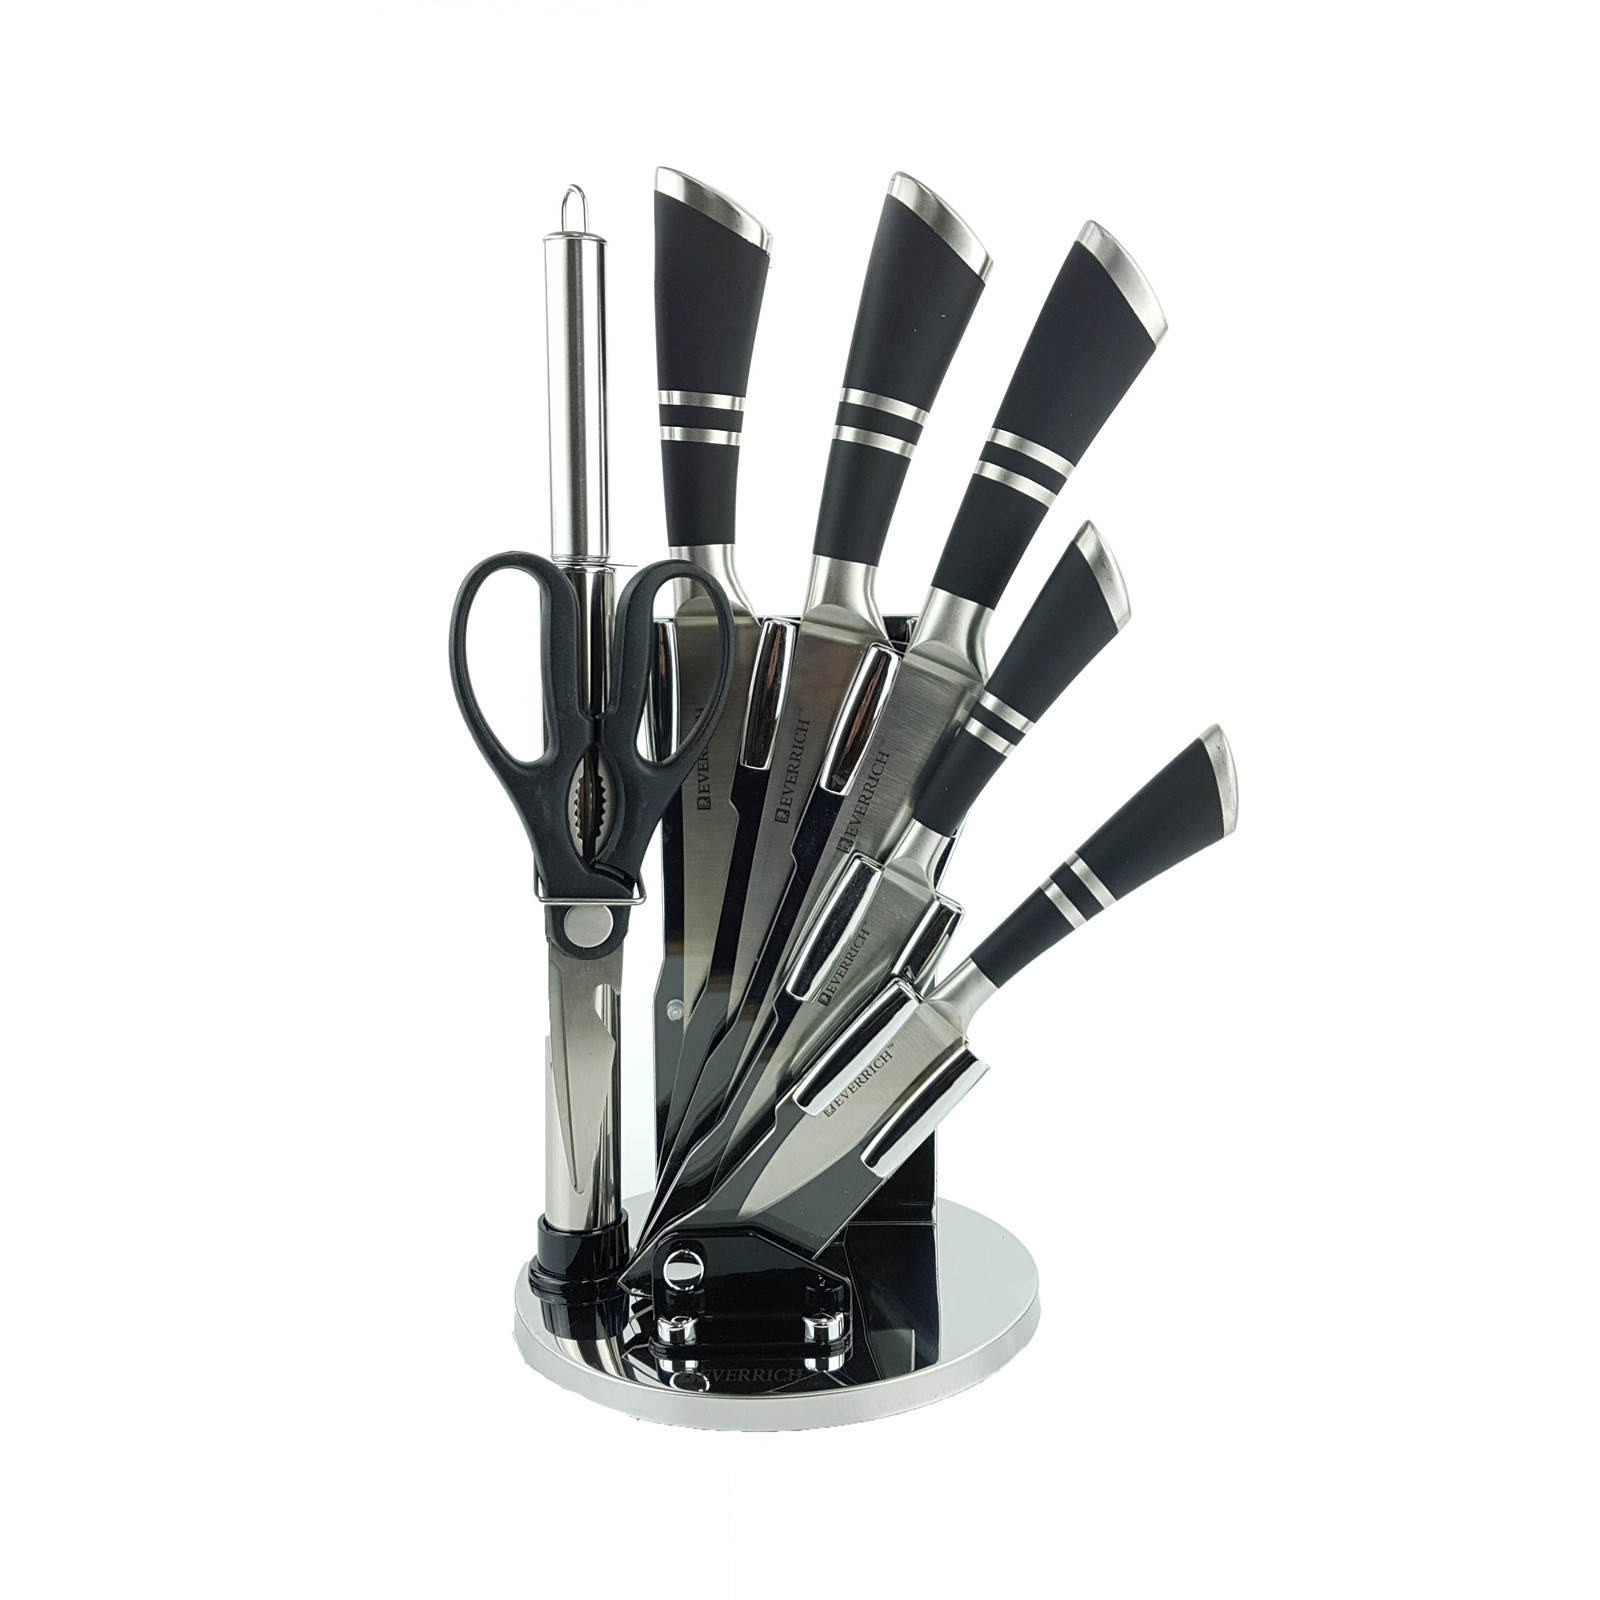 Stainless Steel Kitchen Knife Set with Stand